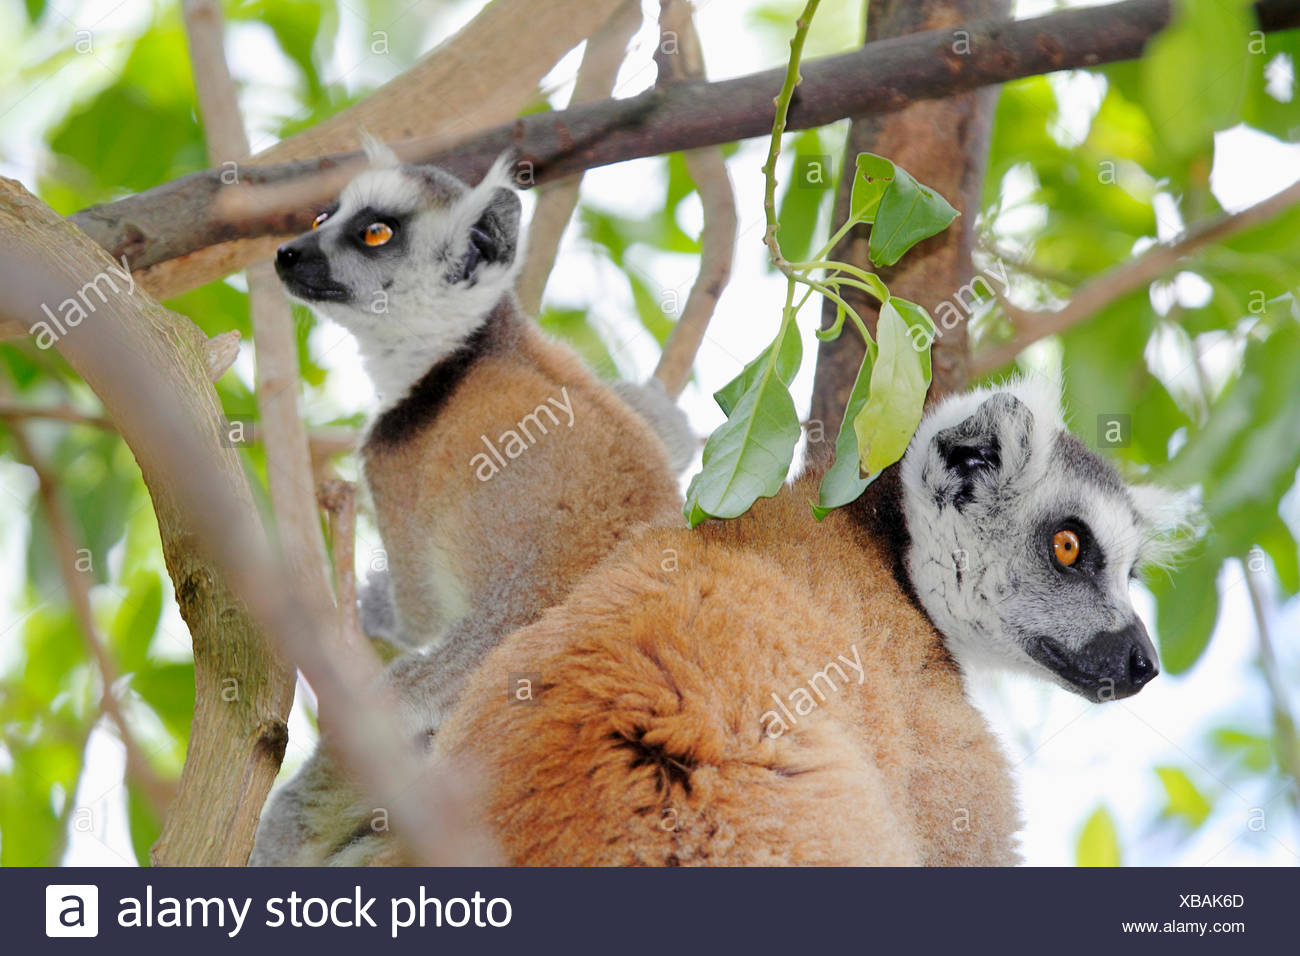 ring-tailed lemur (Lemur catta), two animals are sitting on a branch and looking in different directions, Madagascar, Anja Park - Stock Image